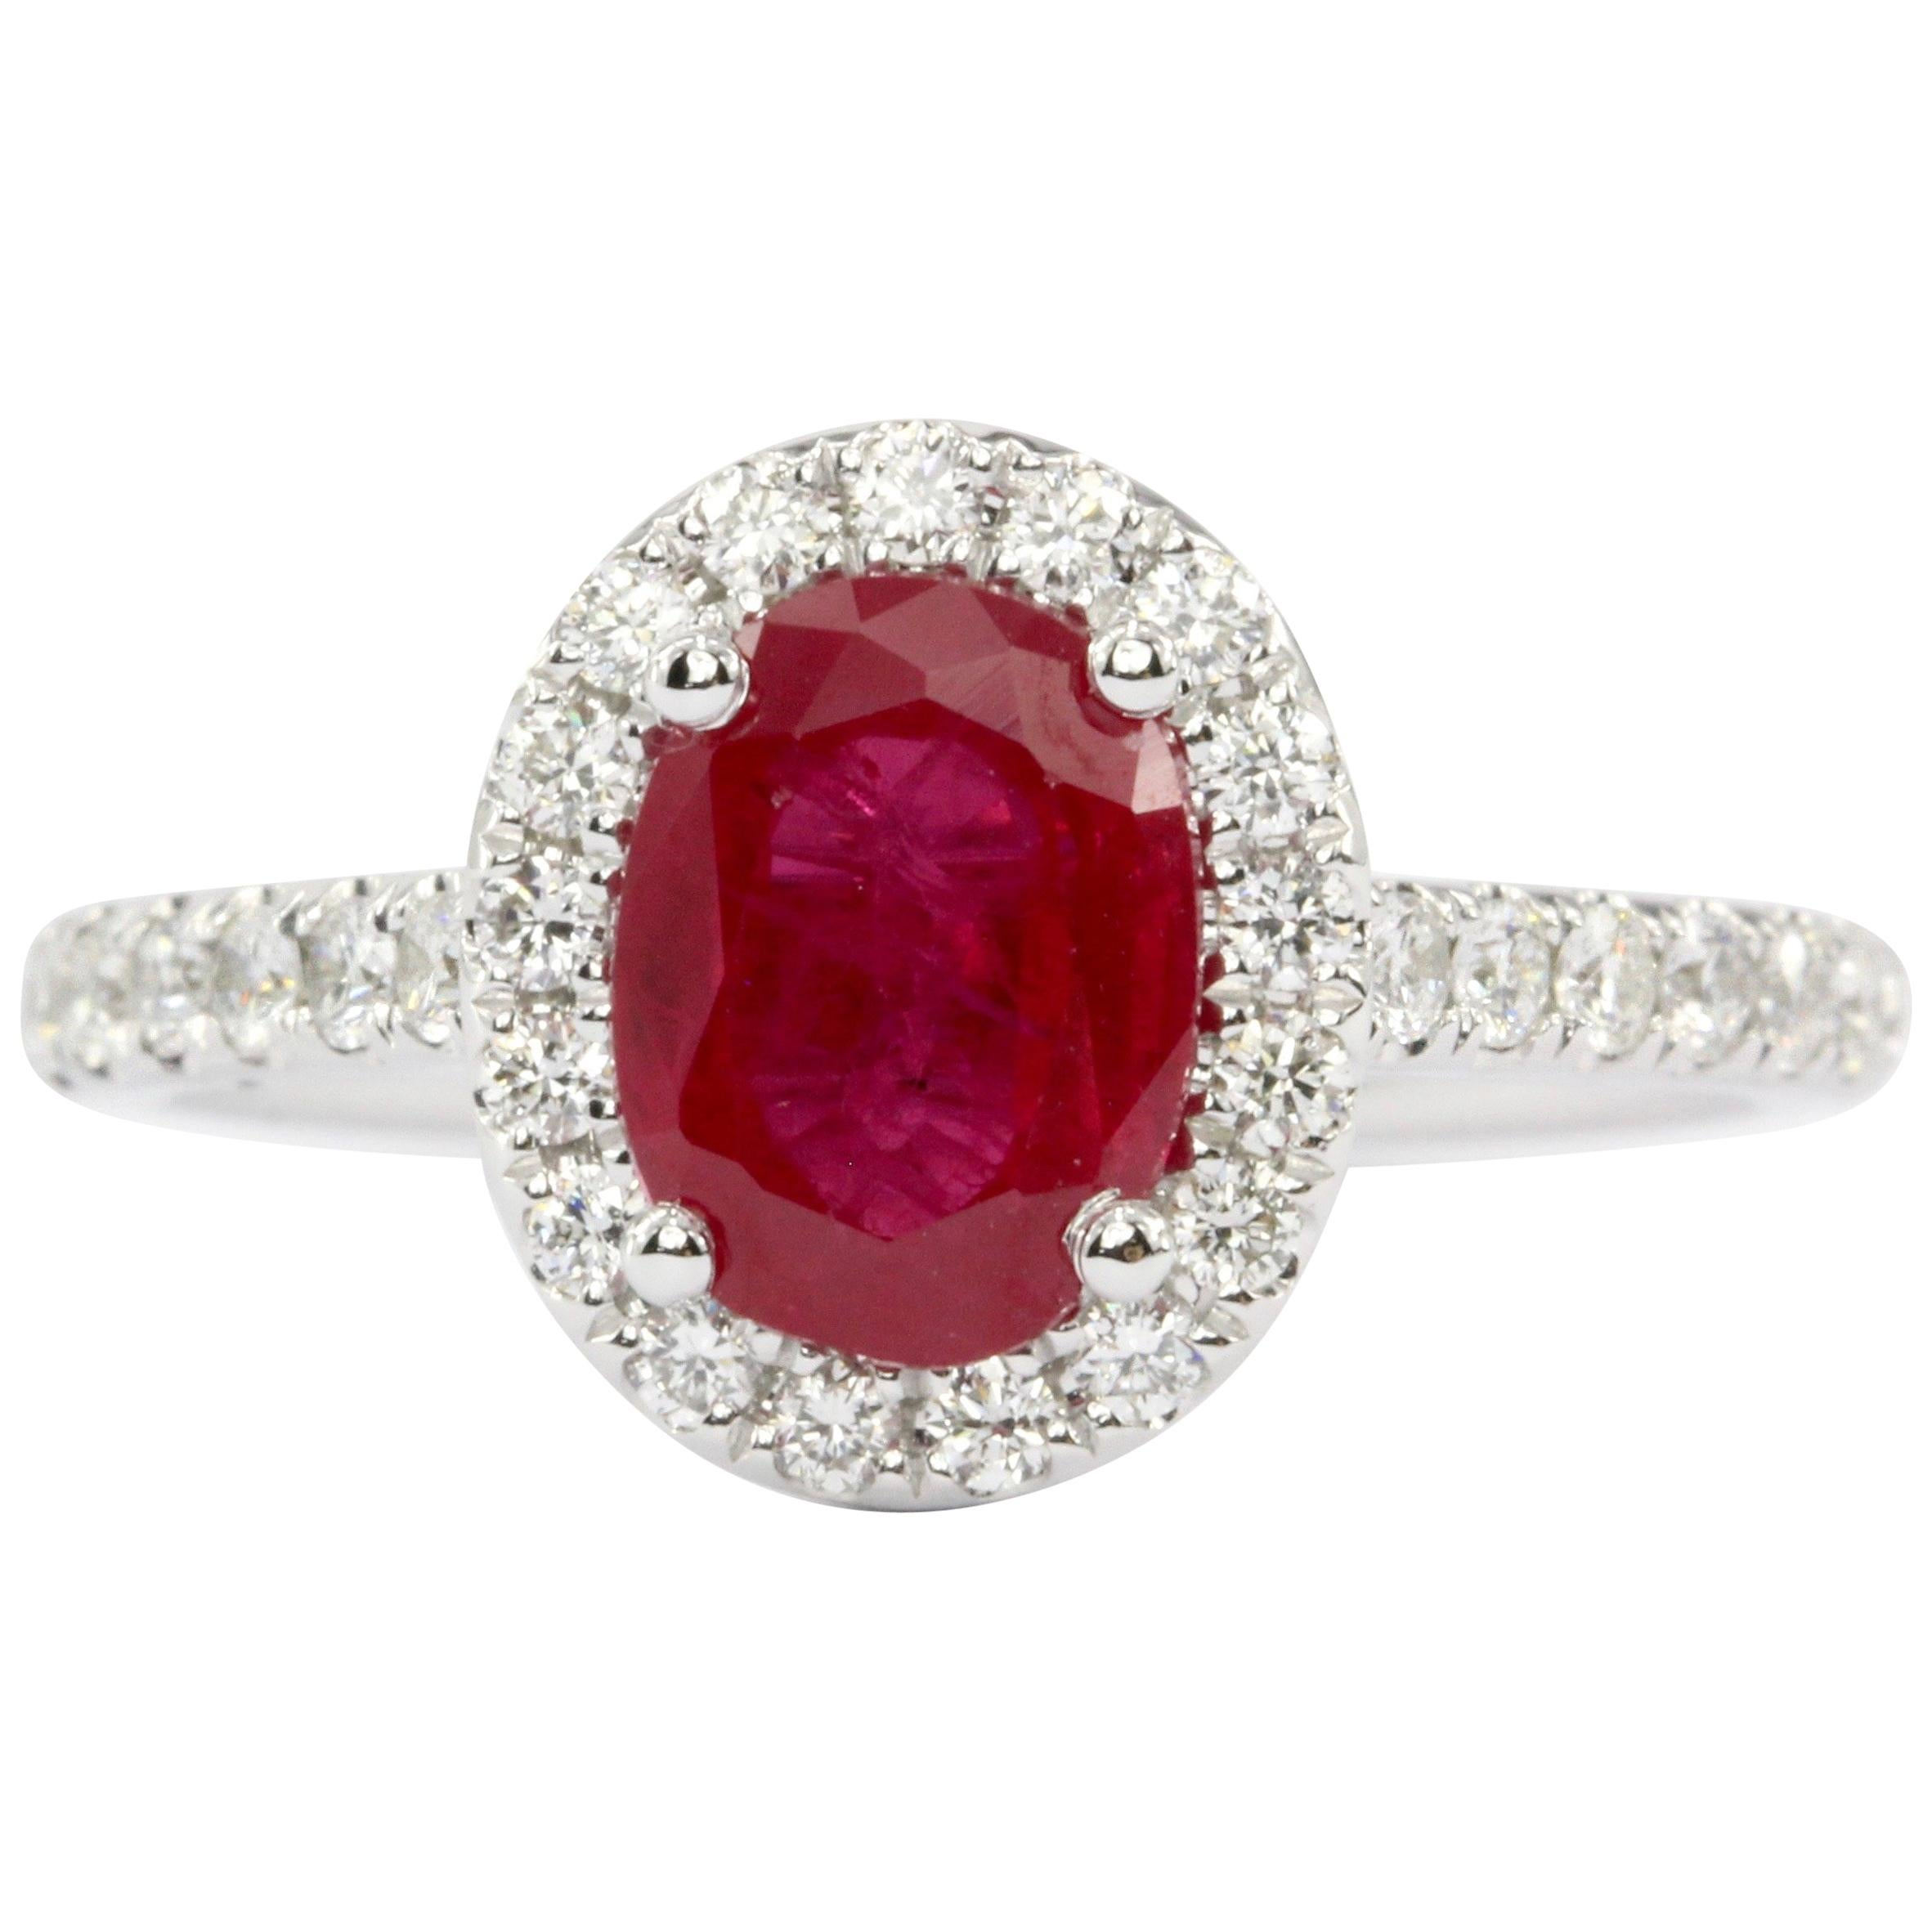 White Gold Oval Cut 2.07 Carat Natural Ruby Diamond Halo Ring